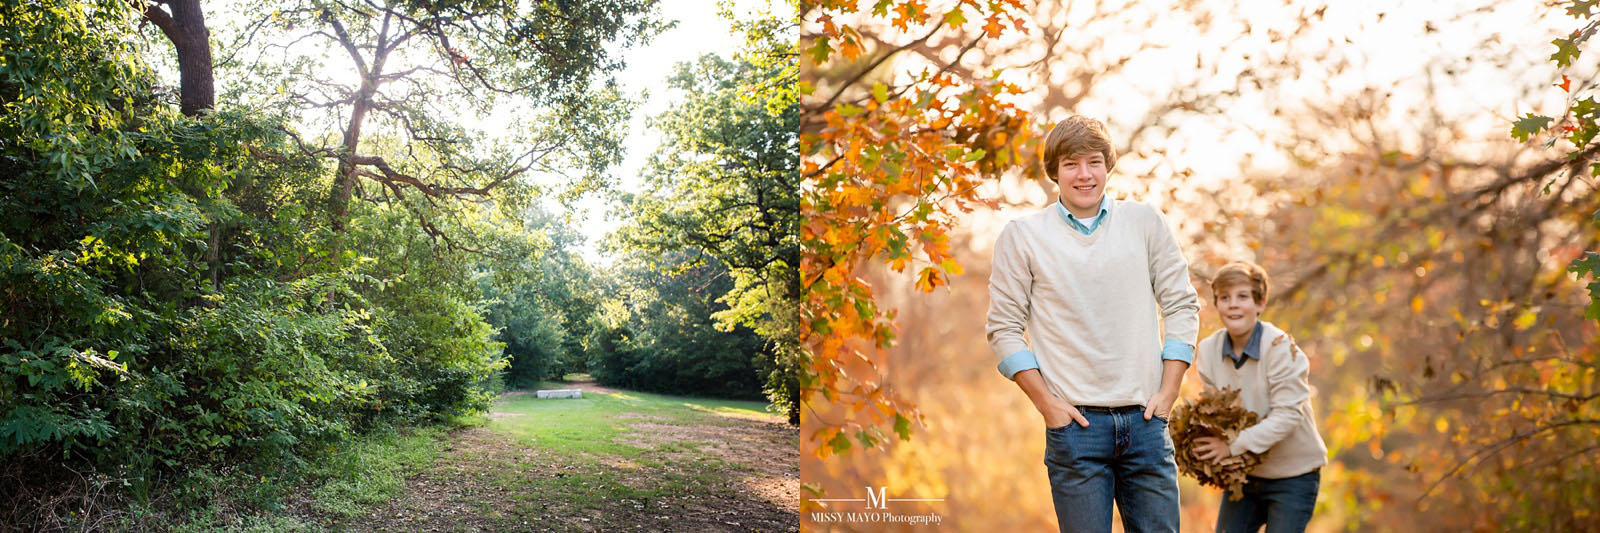 how a location looks different in the summer and fall by Missy Mayo